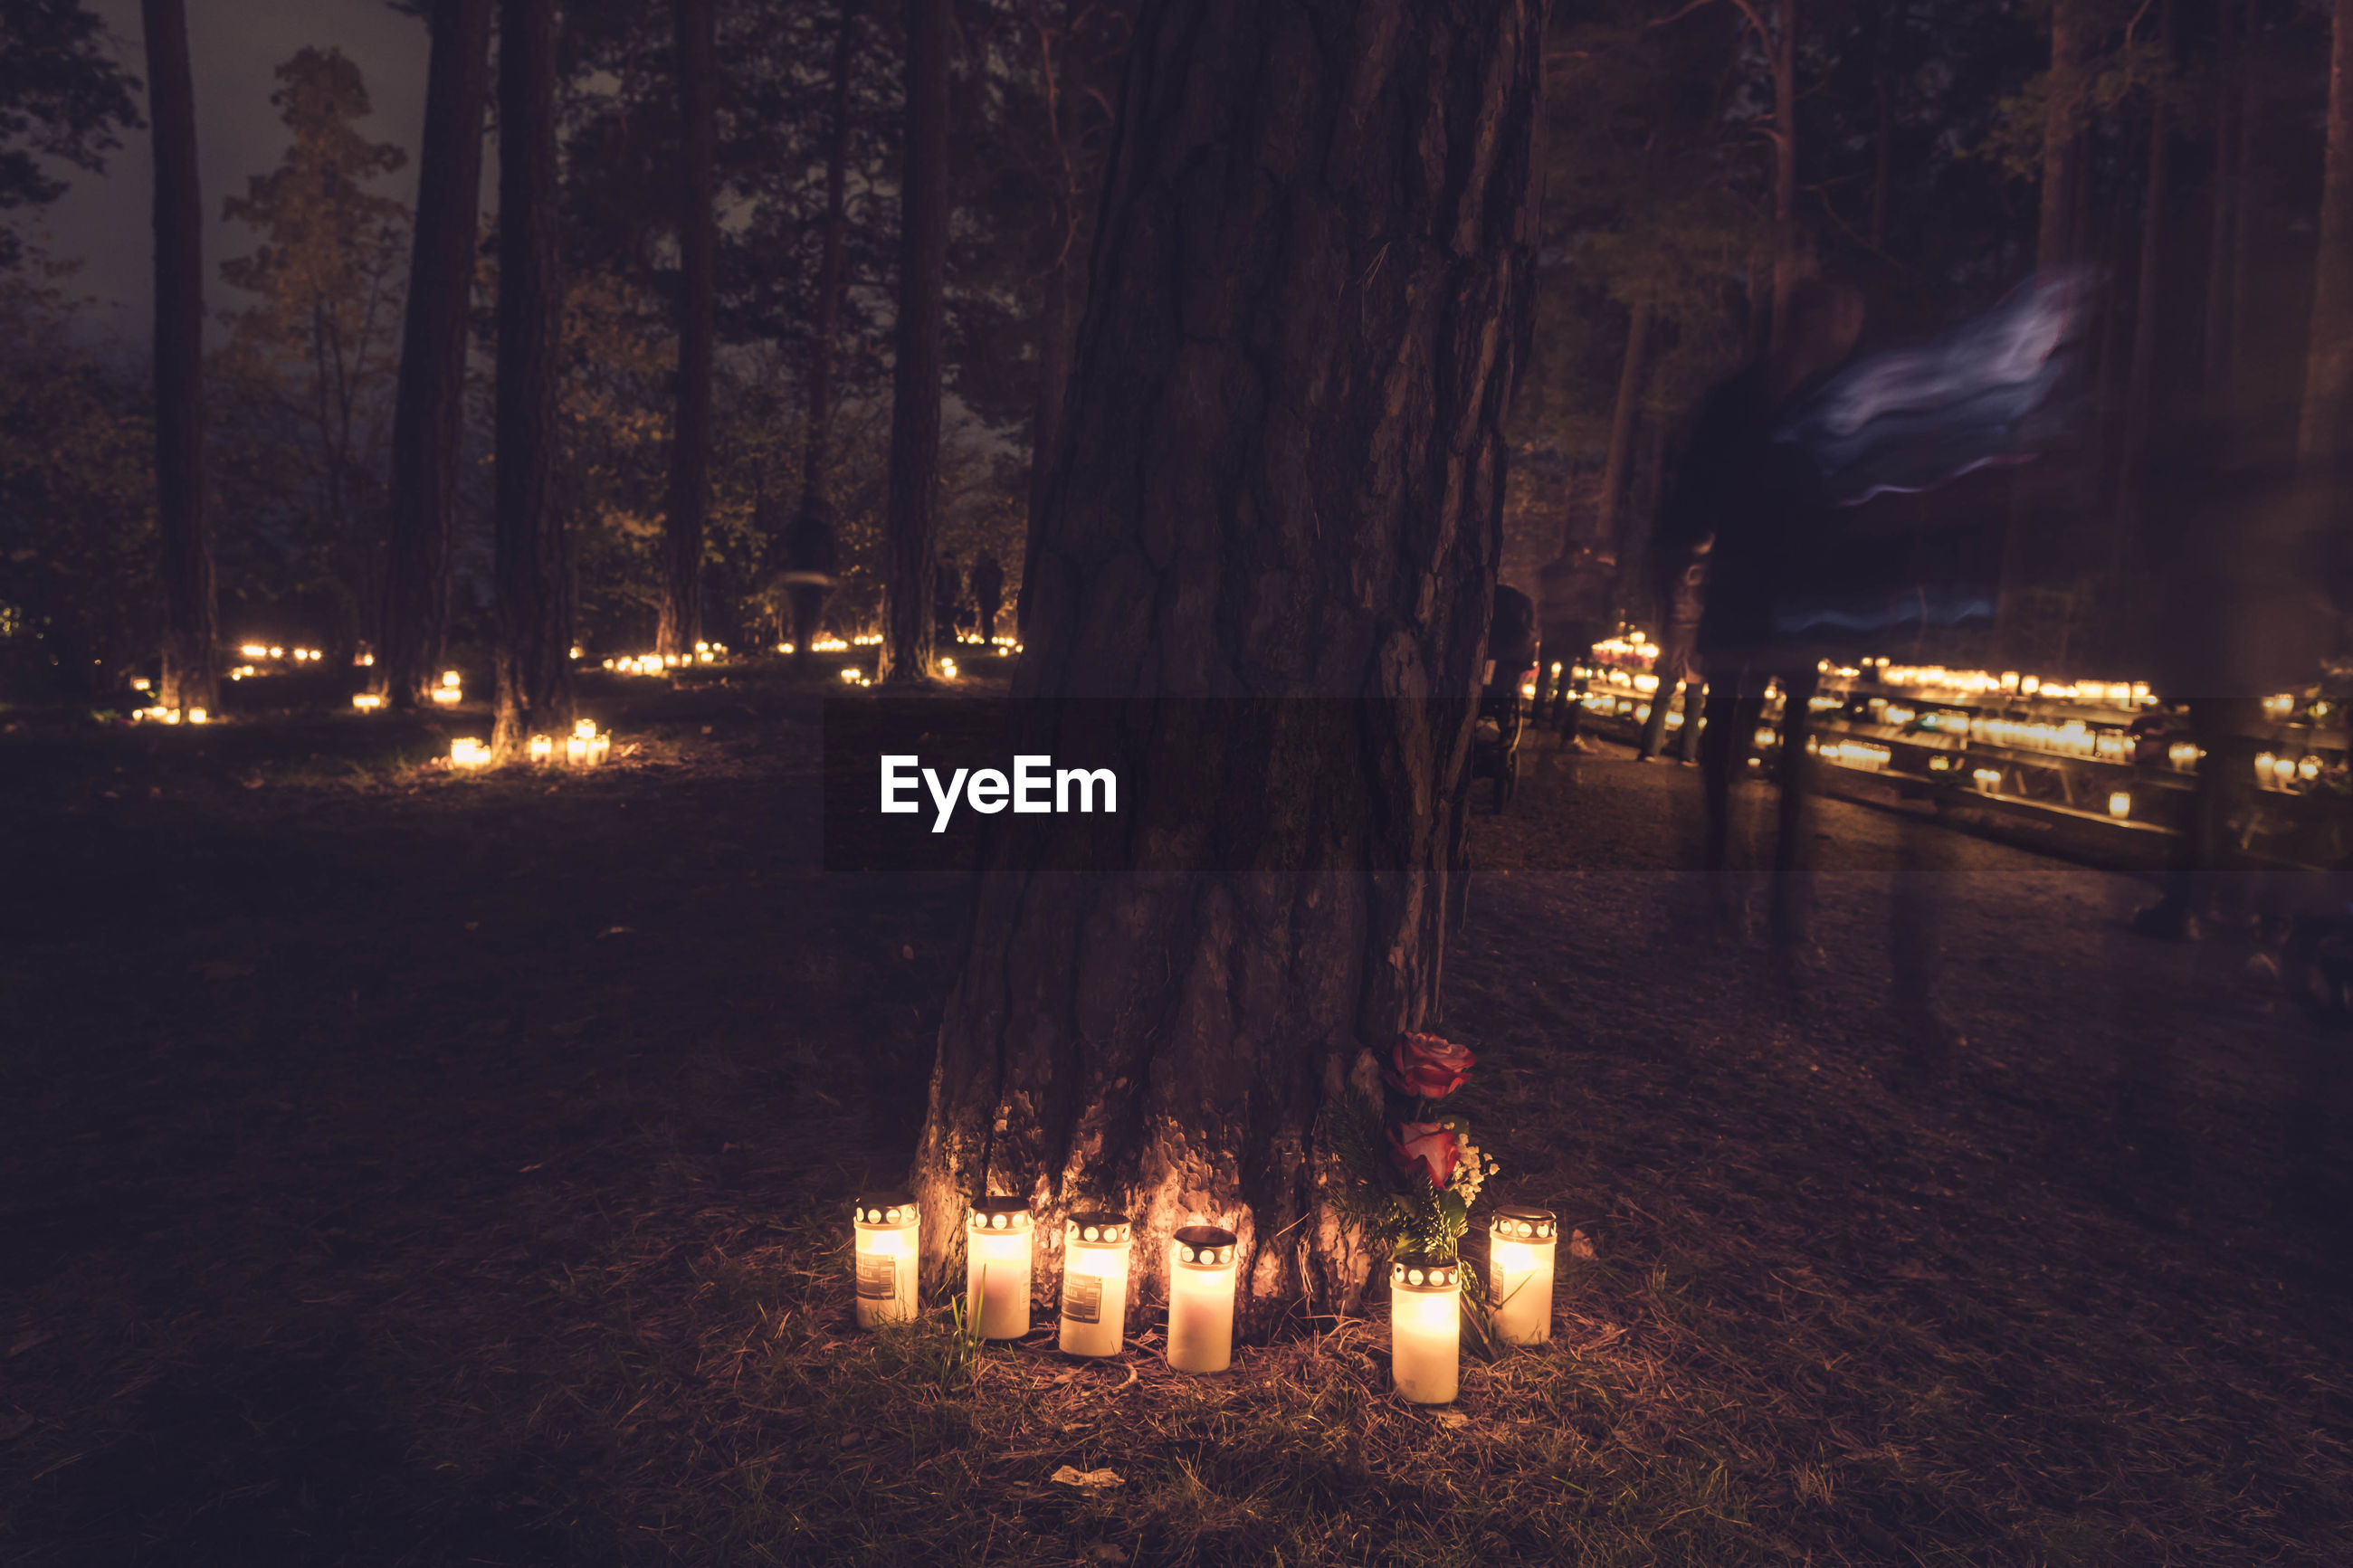 Blurred motion of man walking by lit candles in forest at night